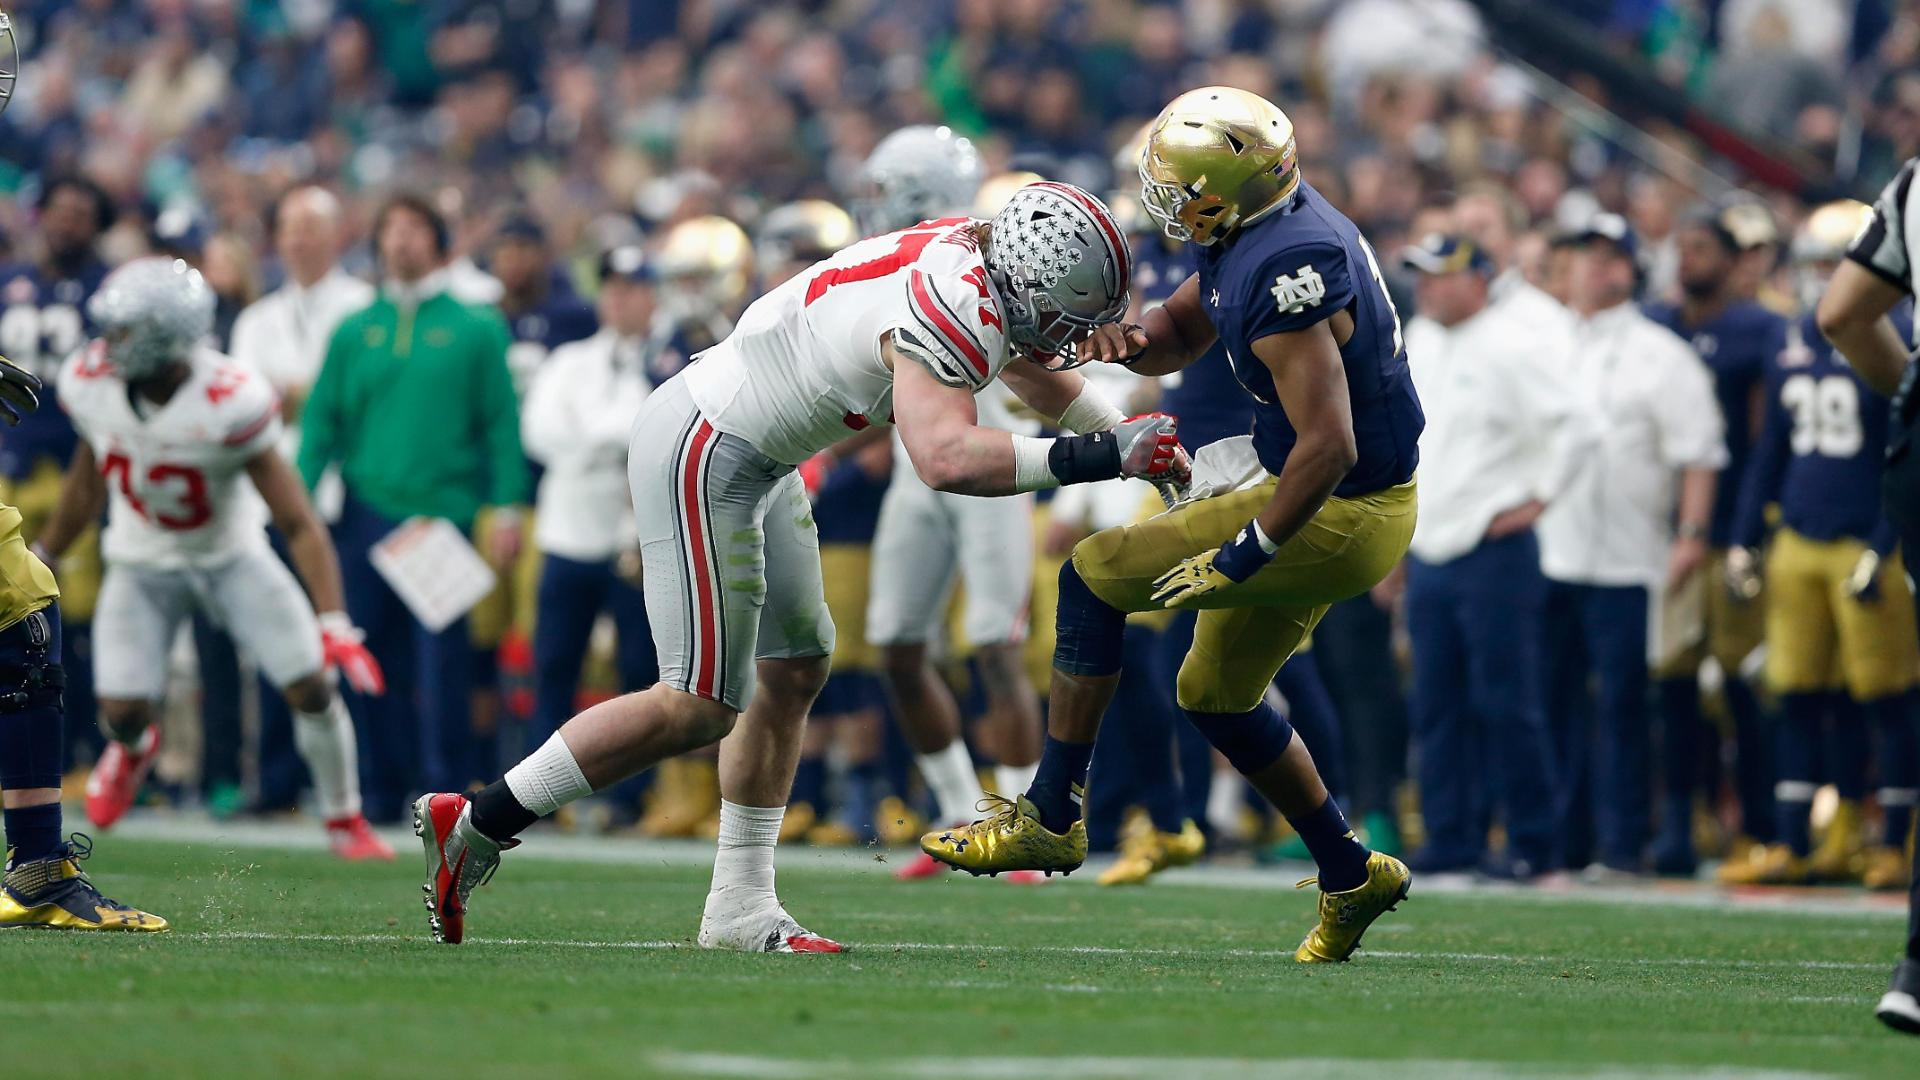 Joey Bosa ejected for tar ing confirms he will enter NFL draft